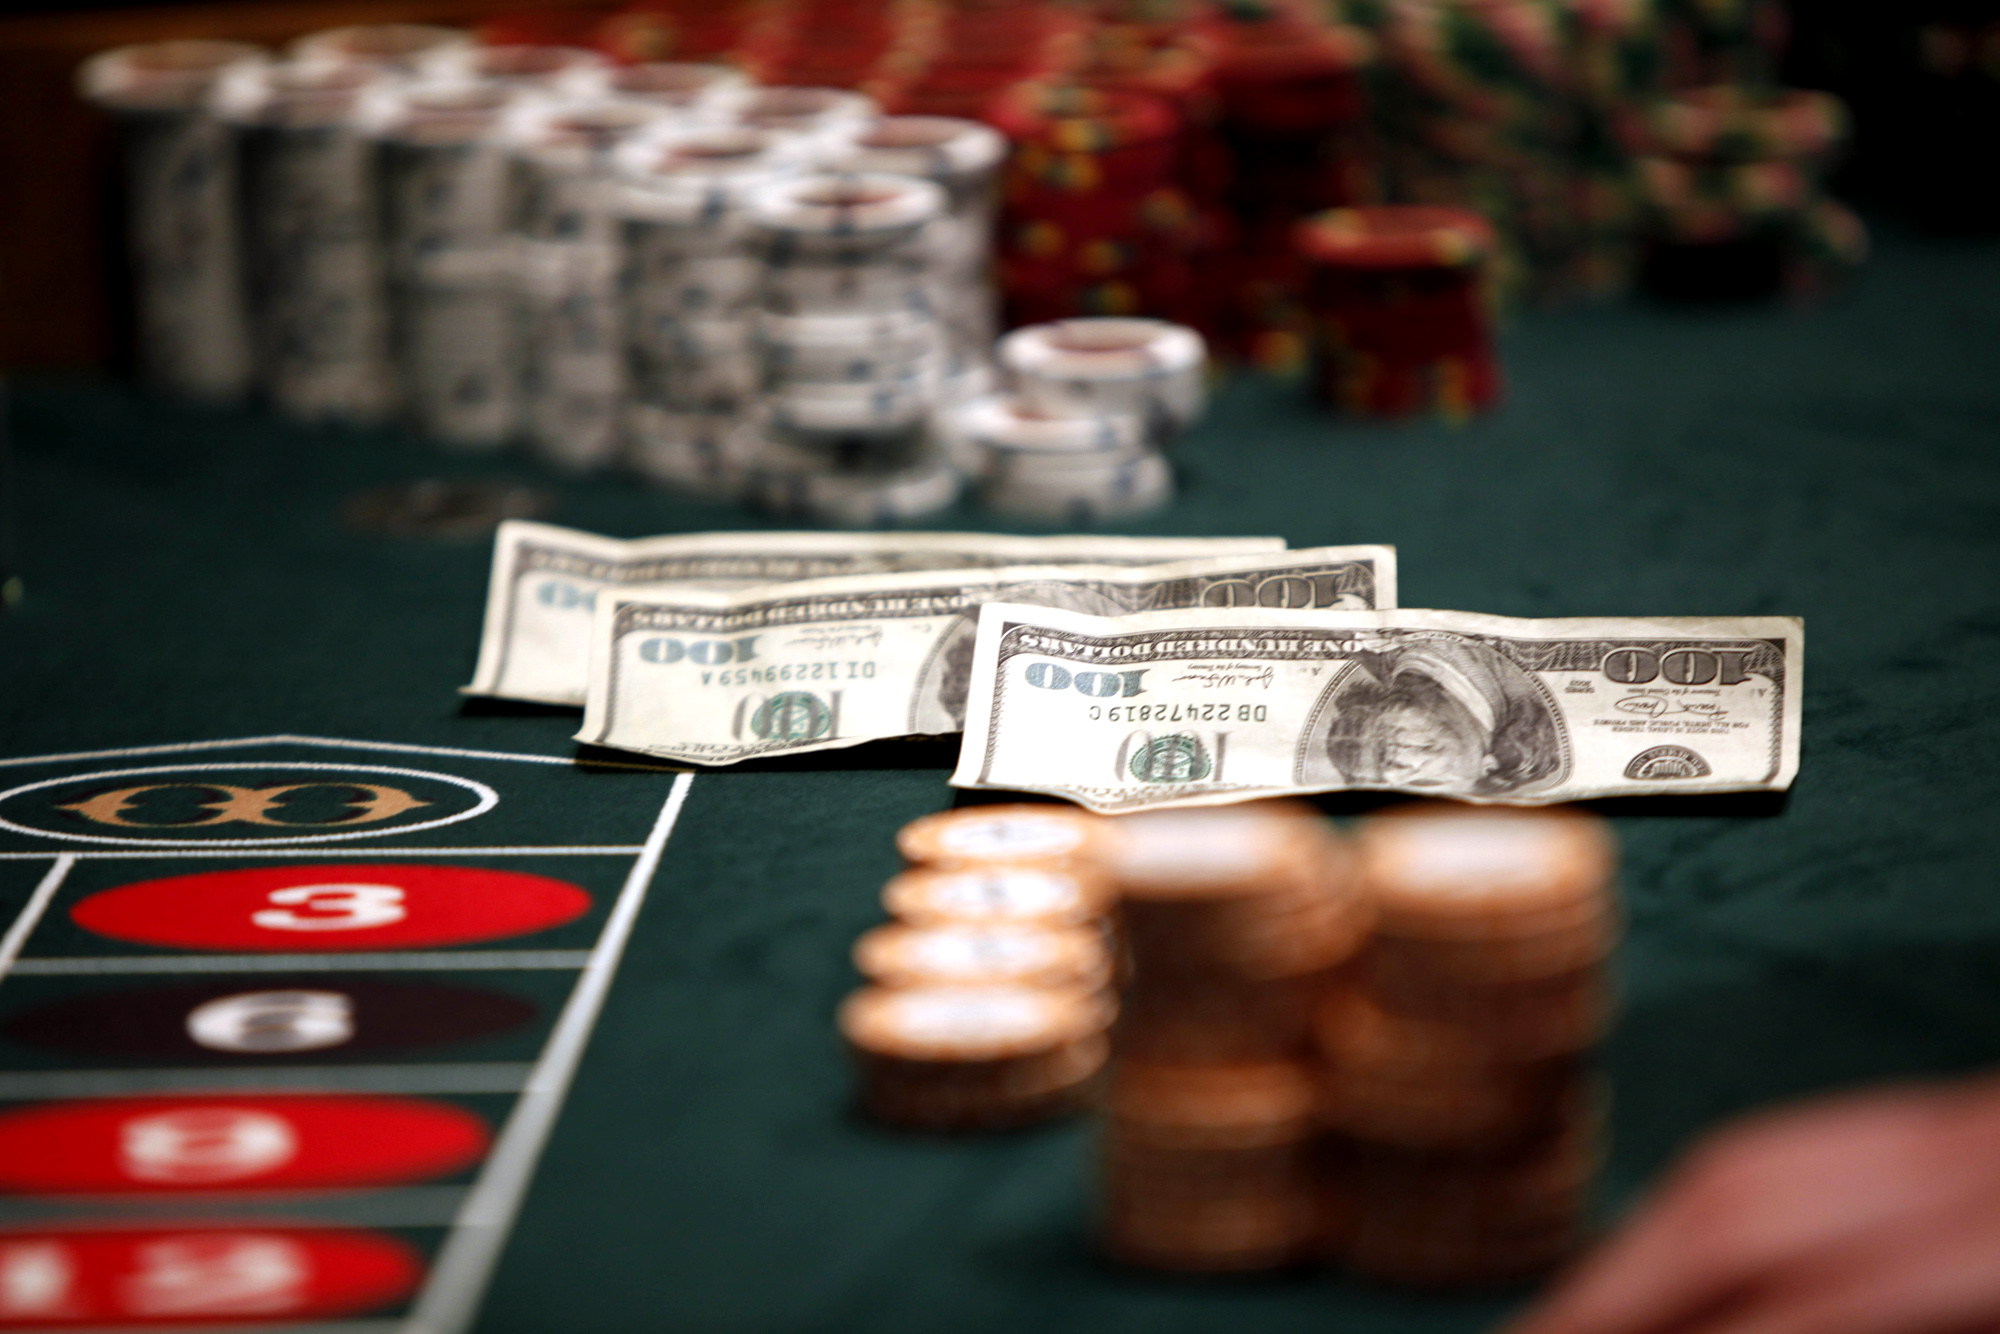 5 Ways To Check The Legality Of An Online Casino